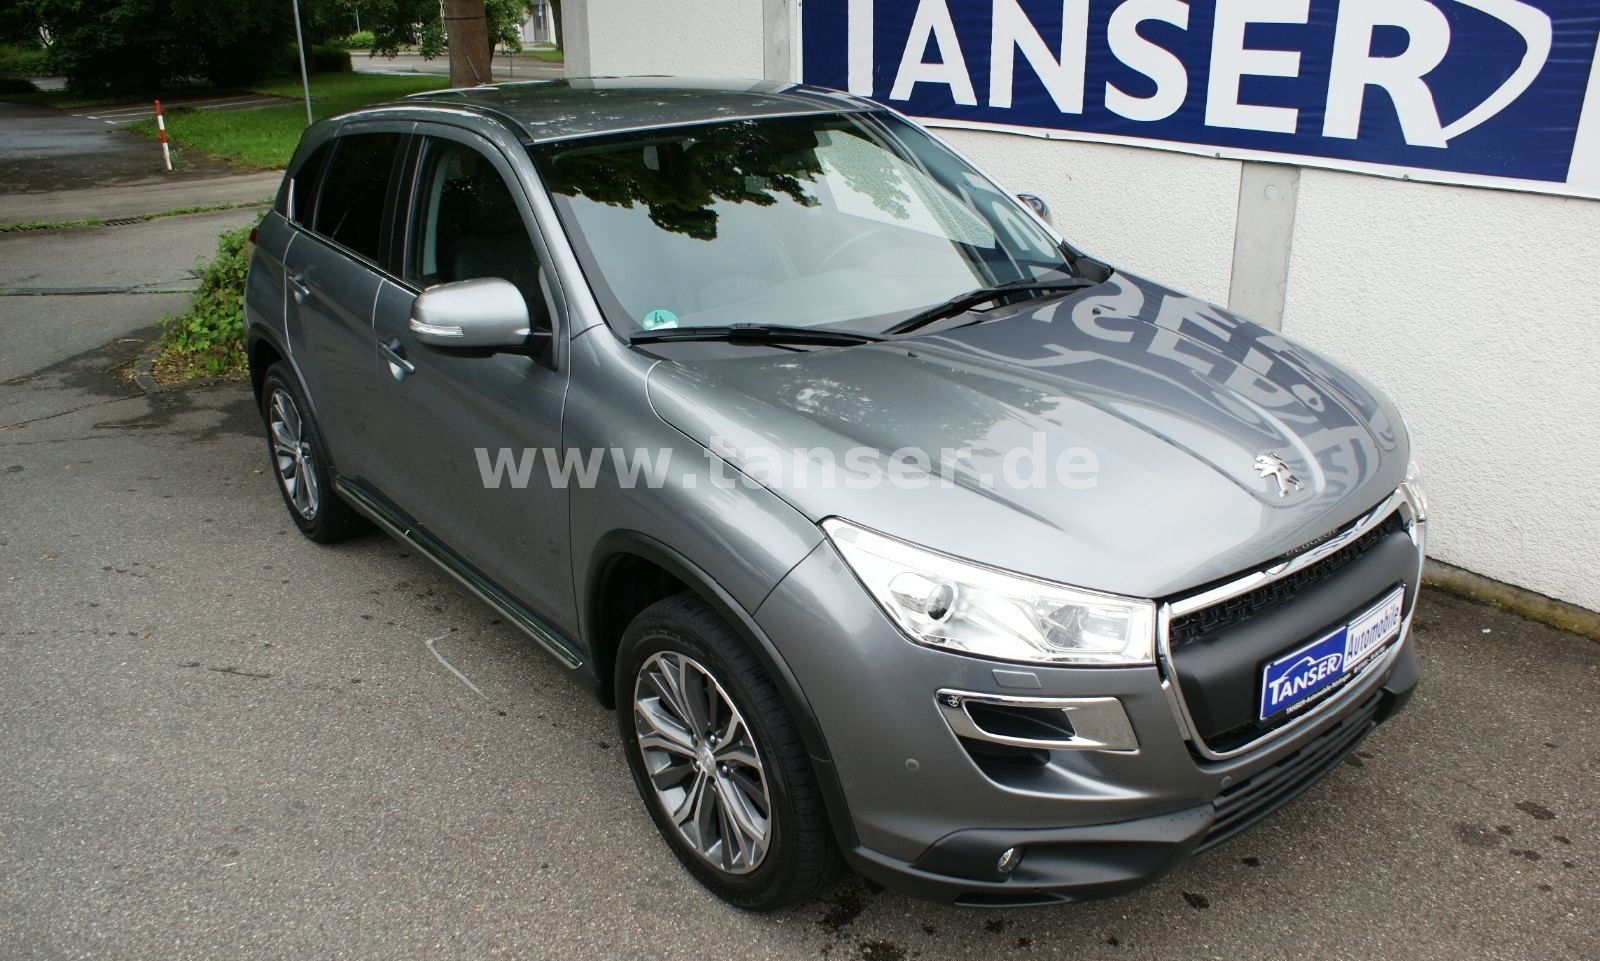 lhd PEUGEOT 4008 (06/2012) - GREY METALLIC - lieu: